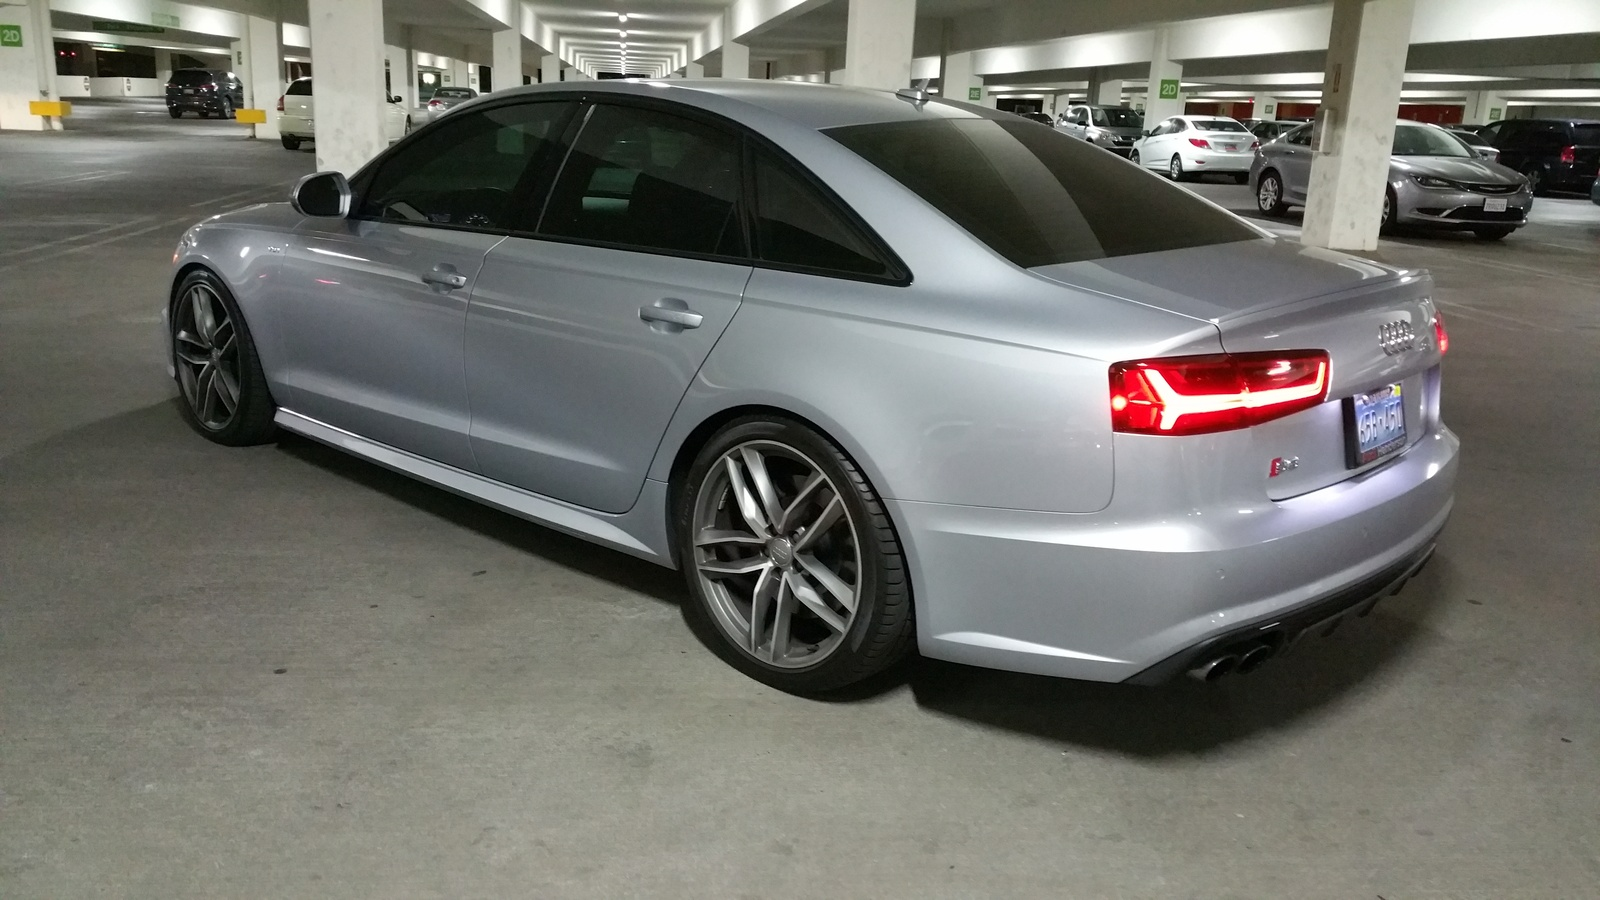 2015 / 2016 Audi S6 for Sale in your area - CarGurus